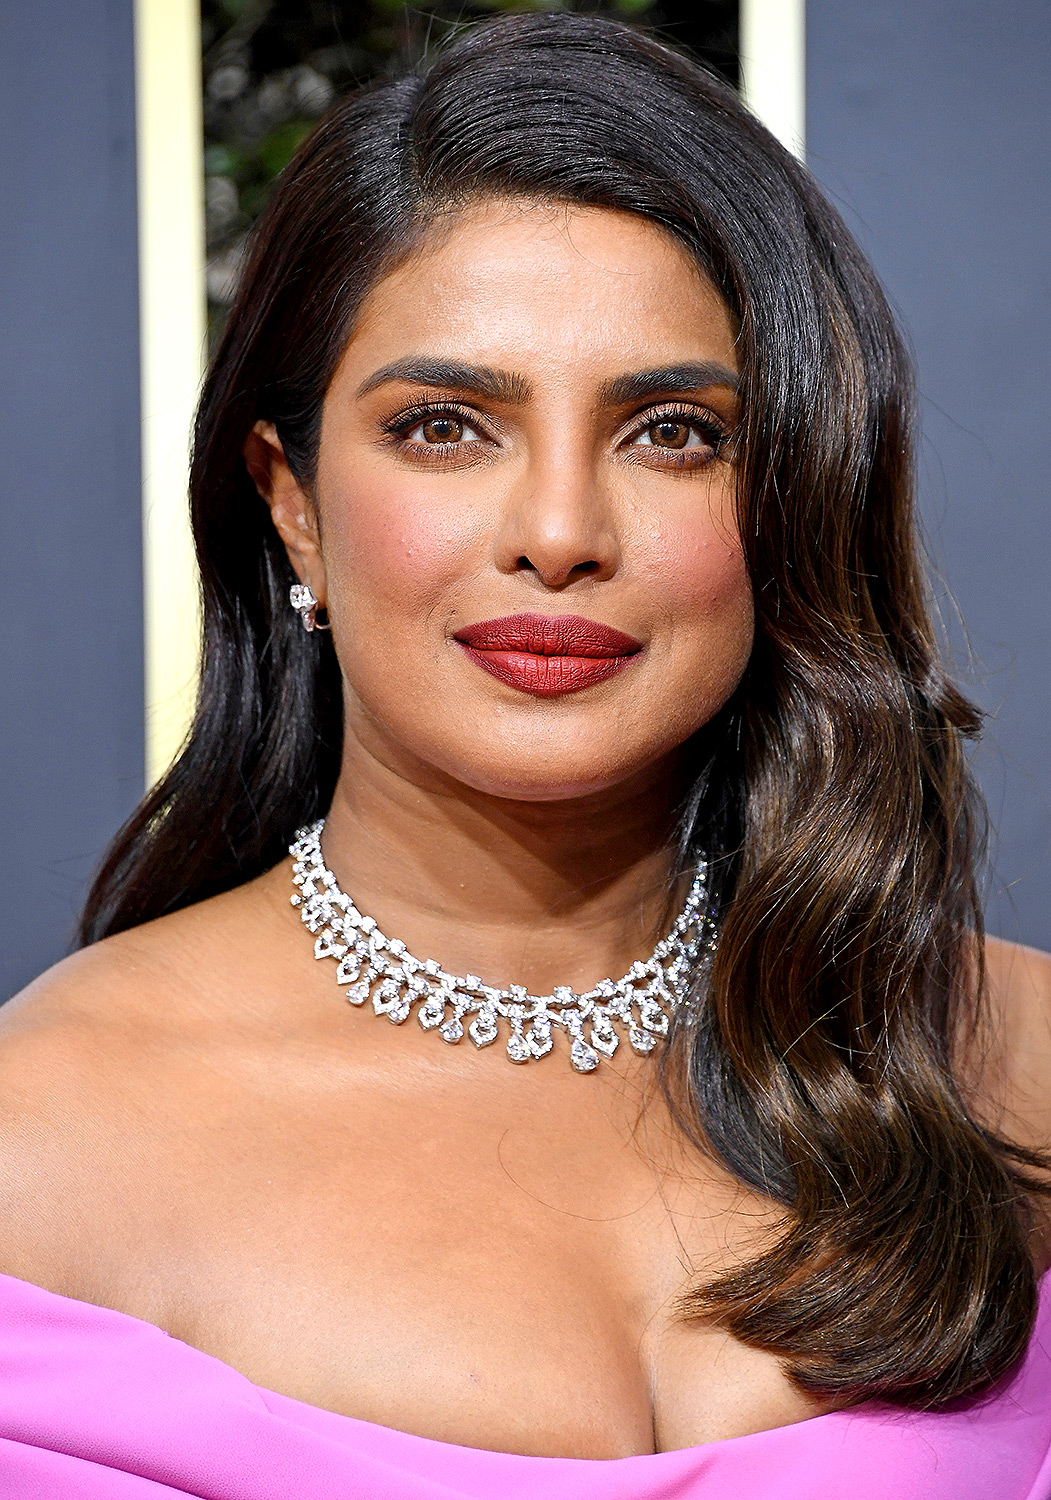 Priyanka Chopra Jonas's Romantic Waves